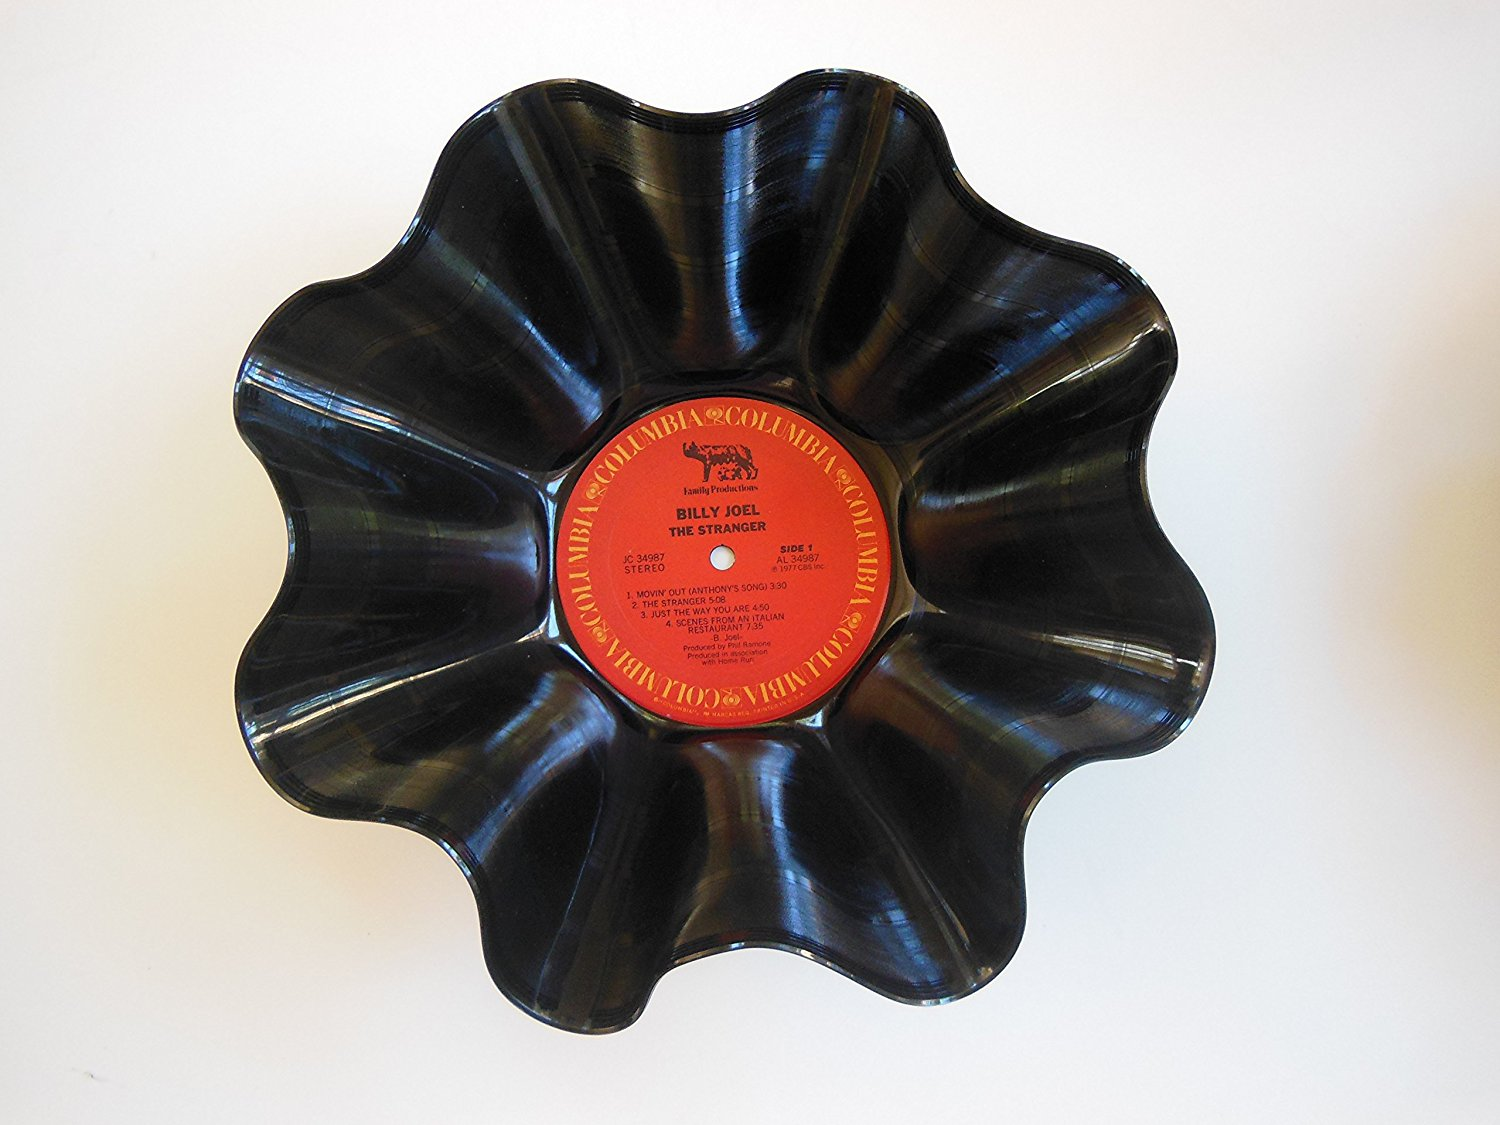 Vinyl Record Bowl Hand Made using a Billy Joel album